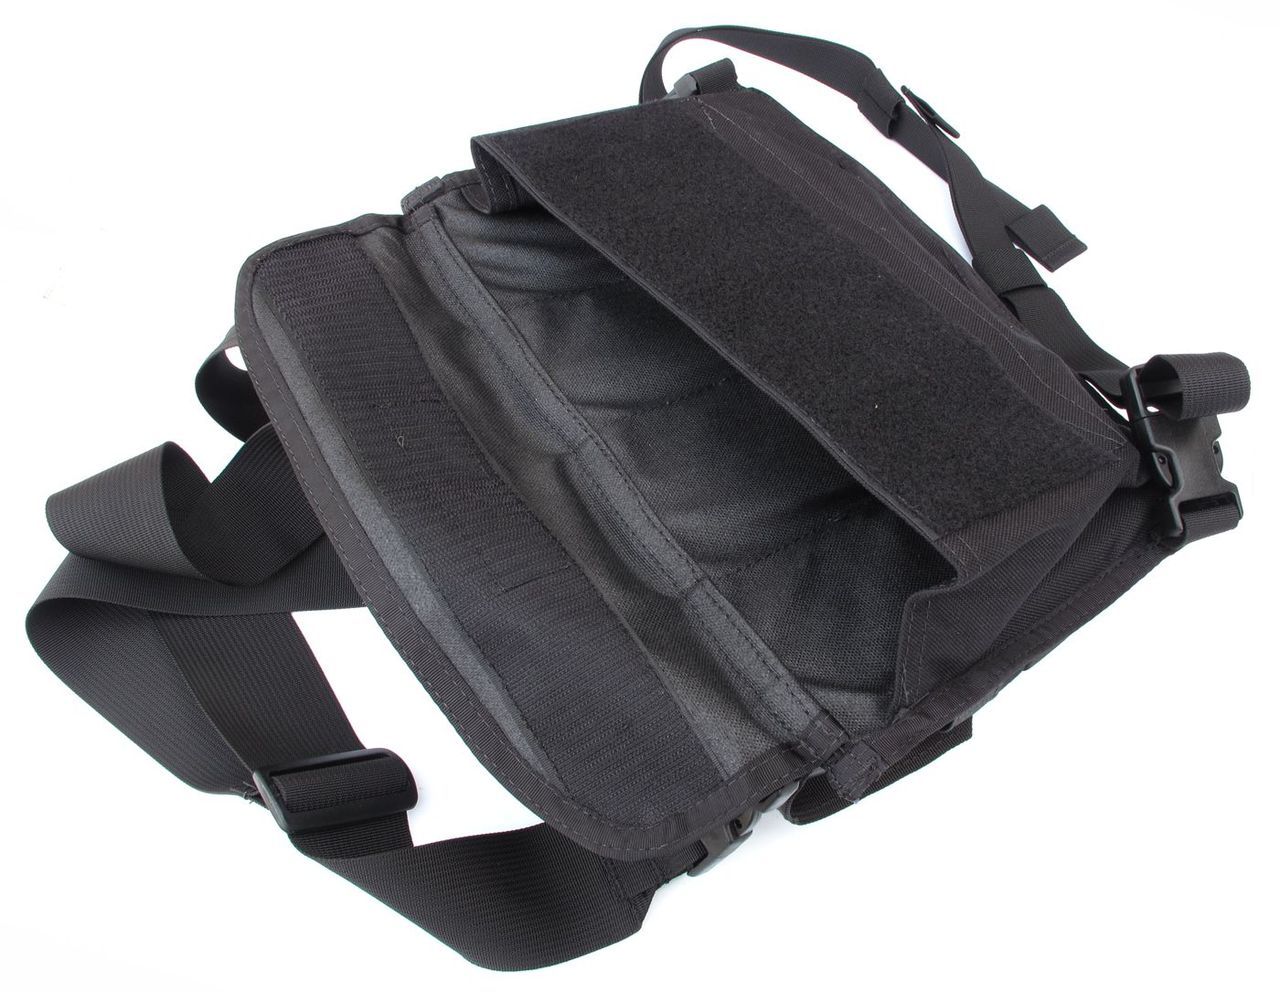 Kley-Zion 8 Pouch Shooters Tactical Bag Coyote